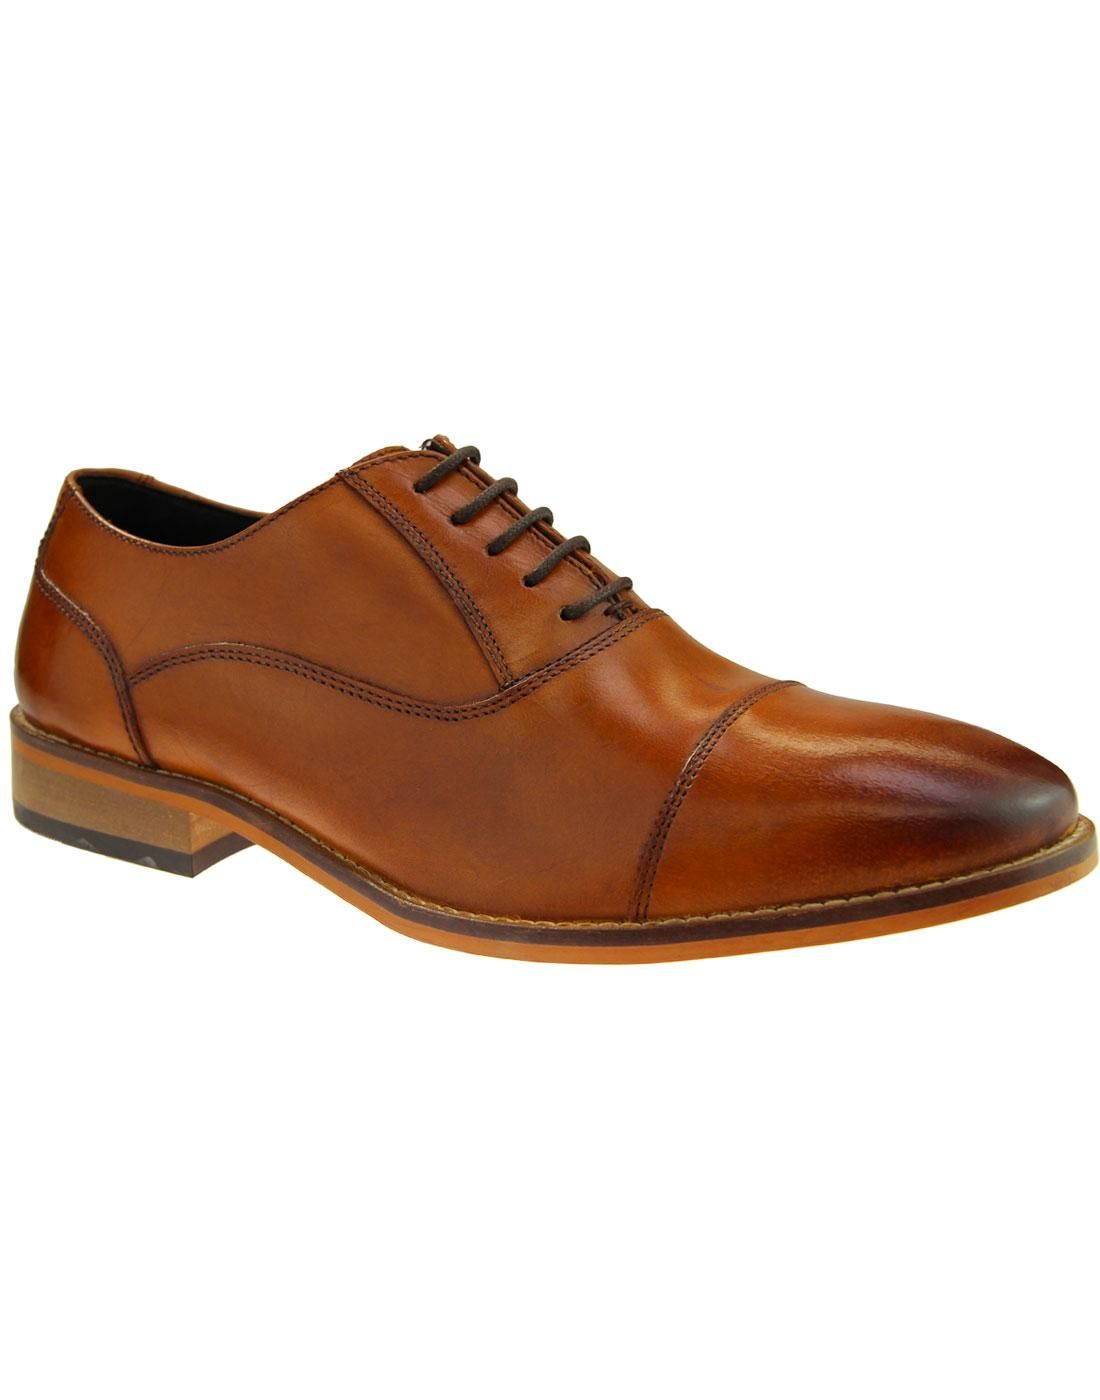 Ikon TOBY Mens Smart Formal Evening Smooth Leather Toe Cap Oxford Shoes Tan